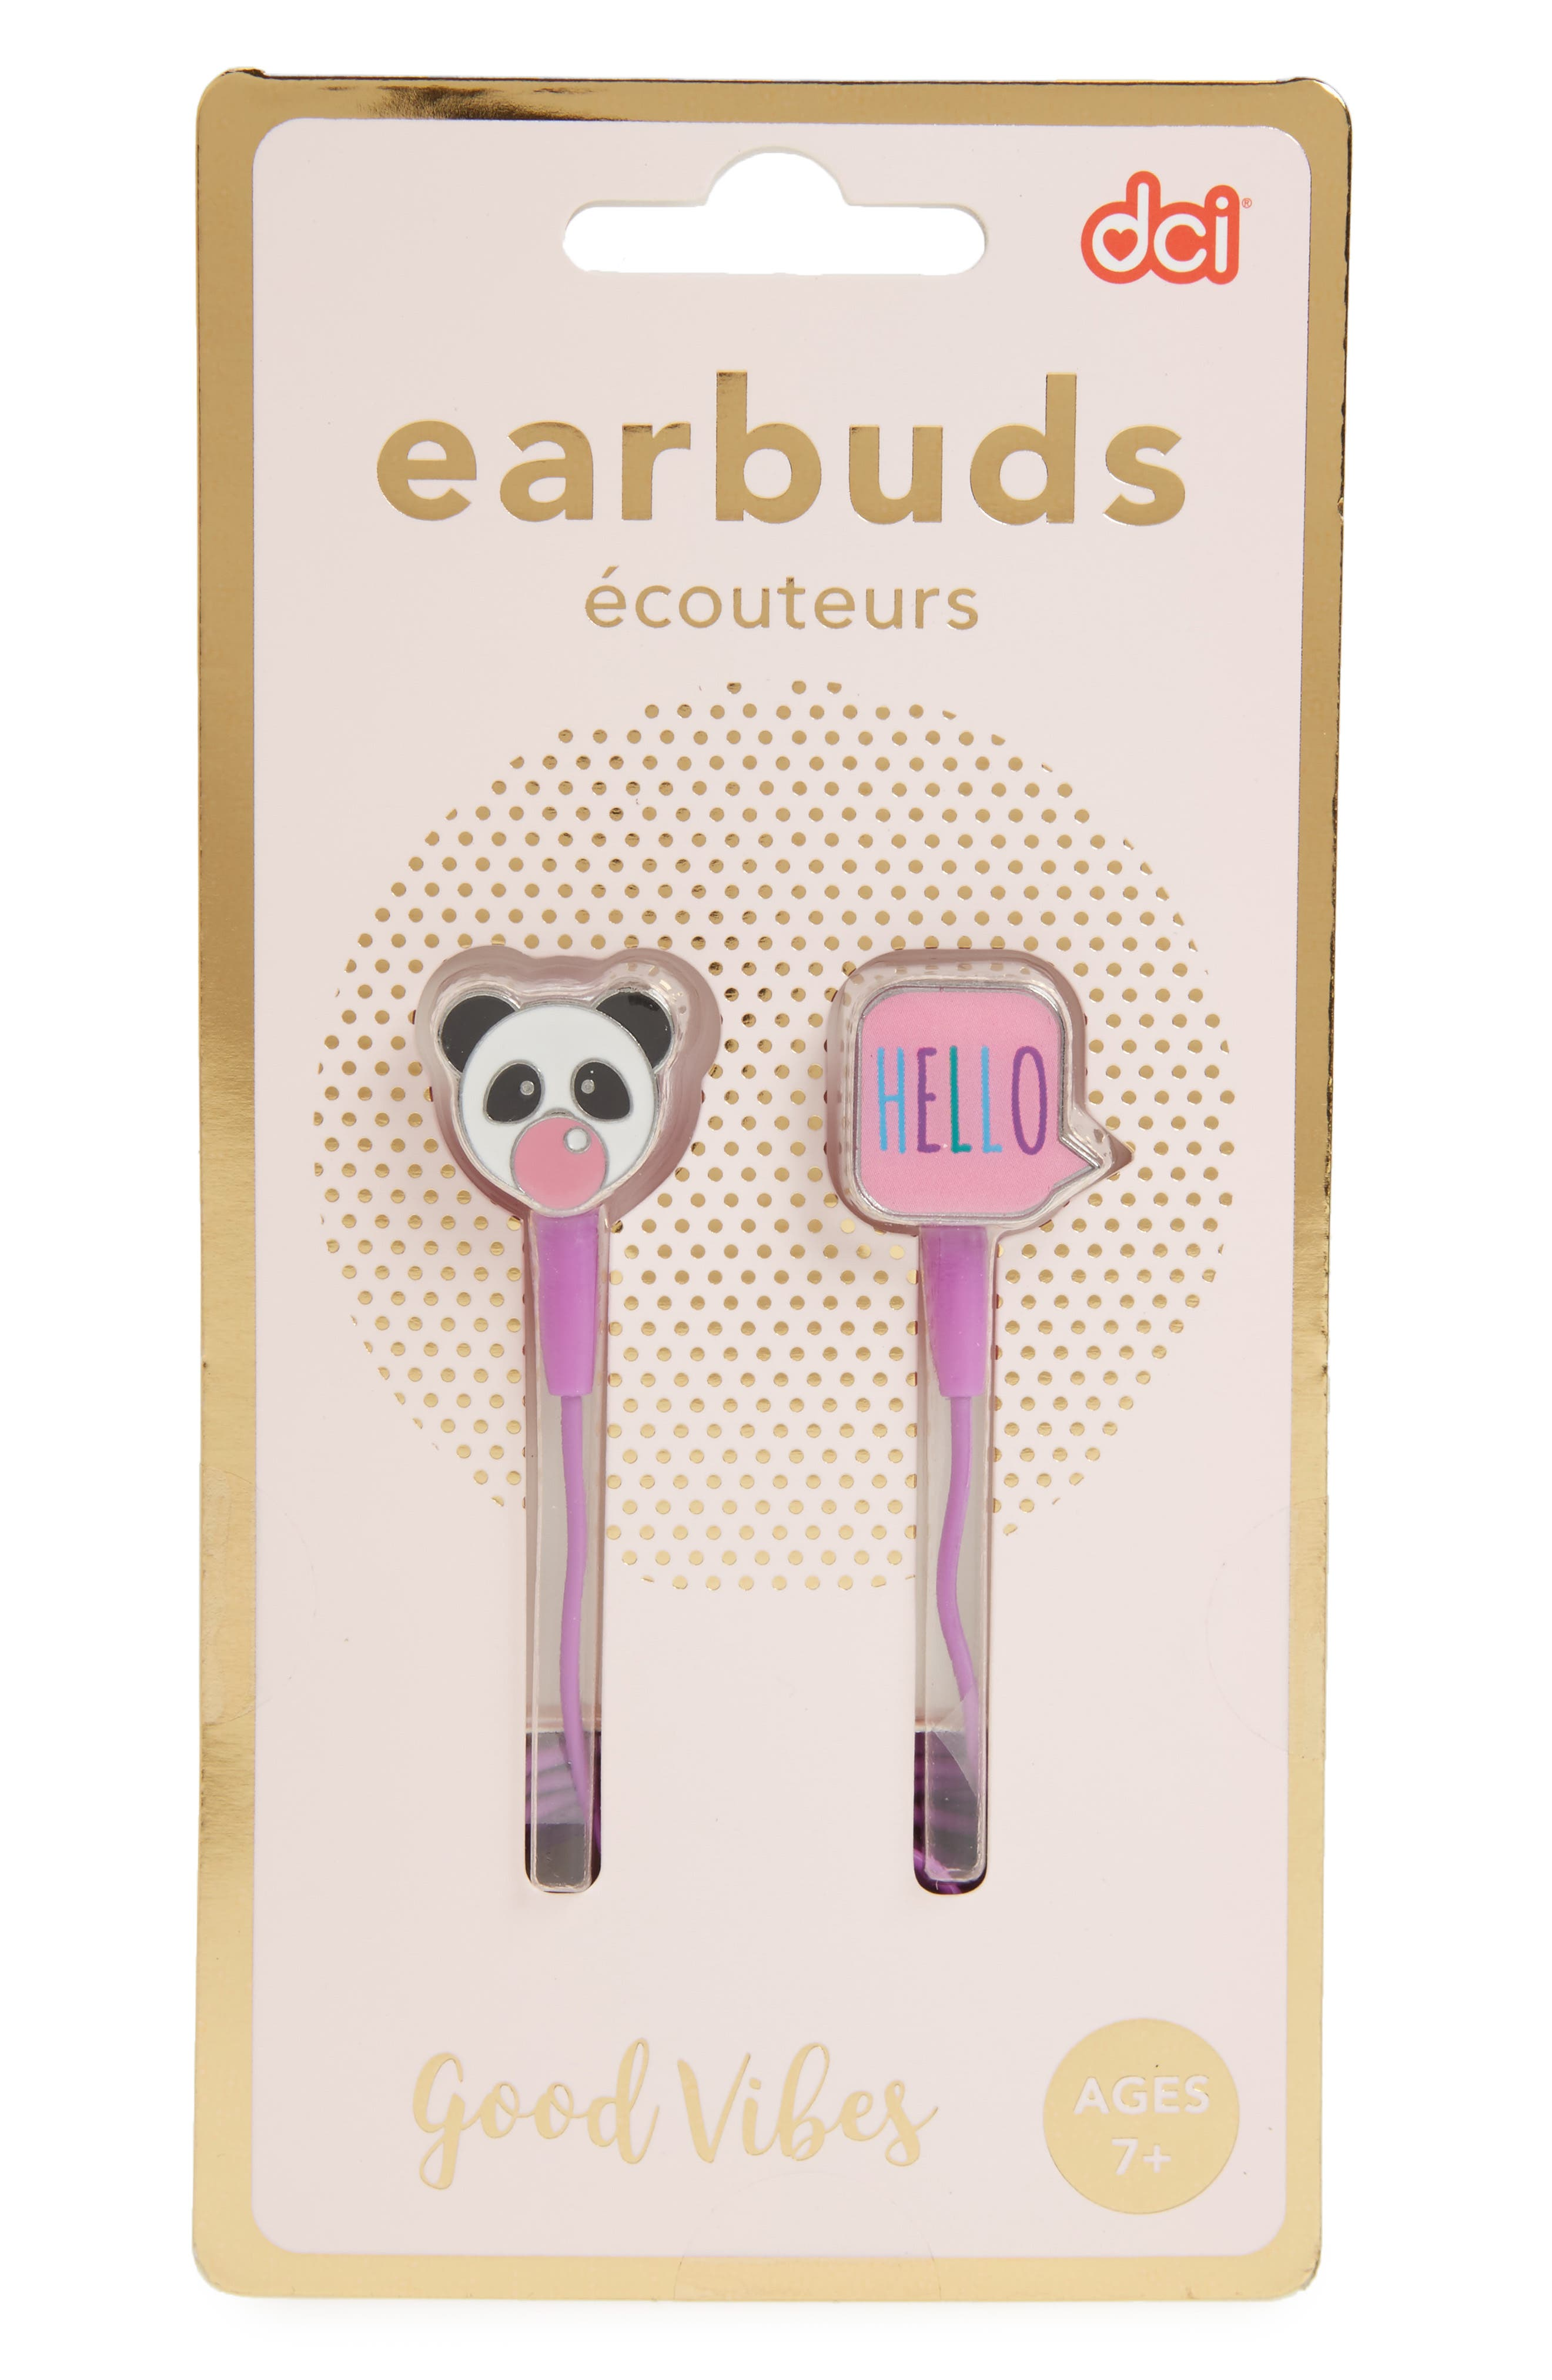 Good Vibes Earbuds,                         Main,                         color, Pink Multi